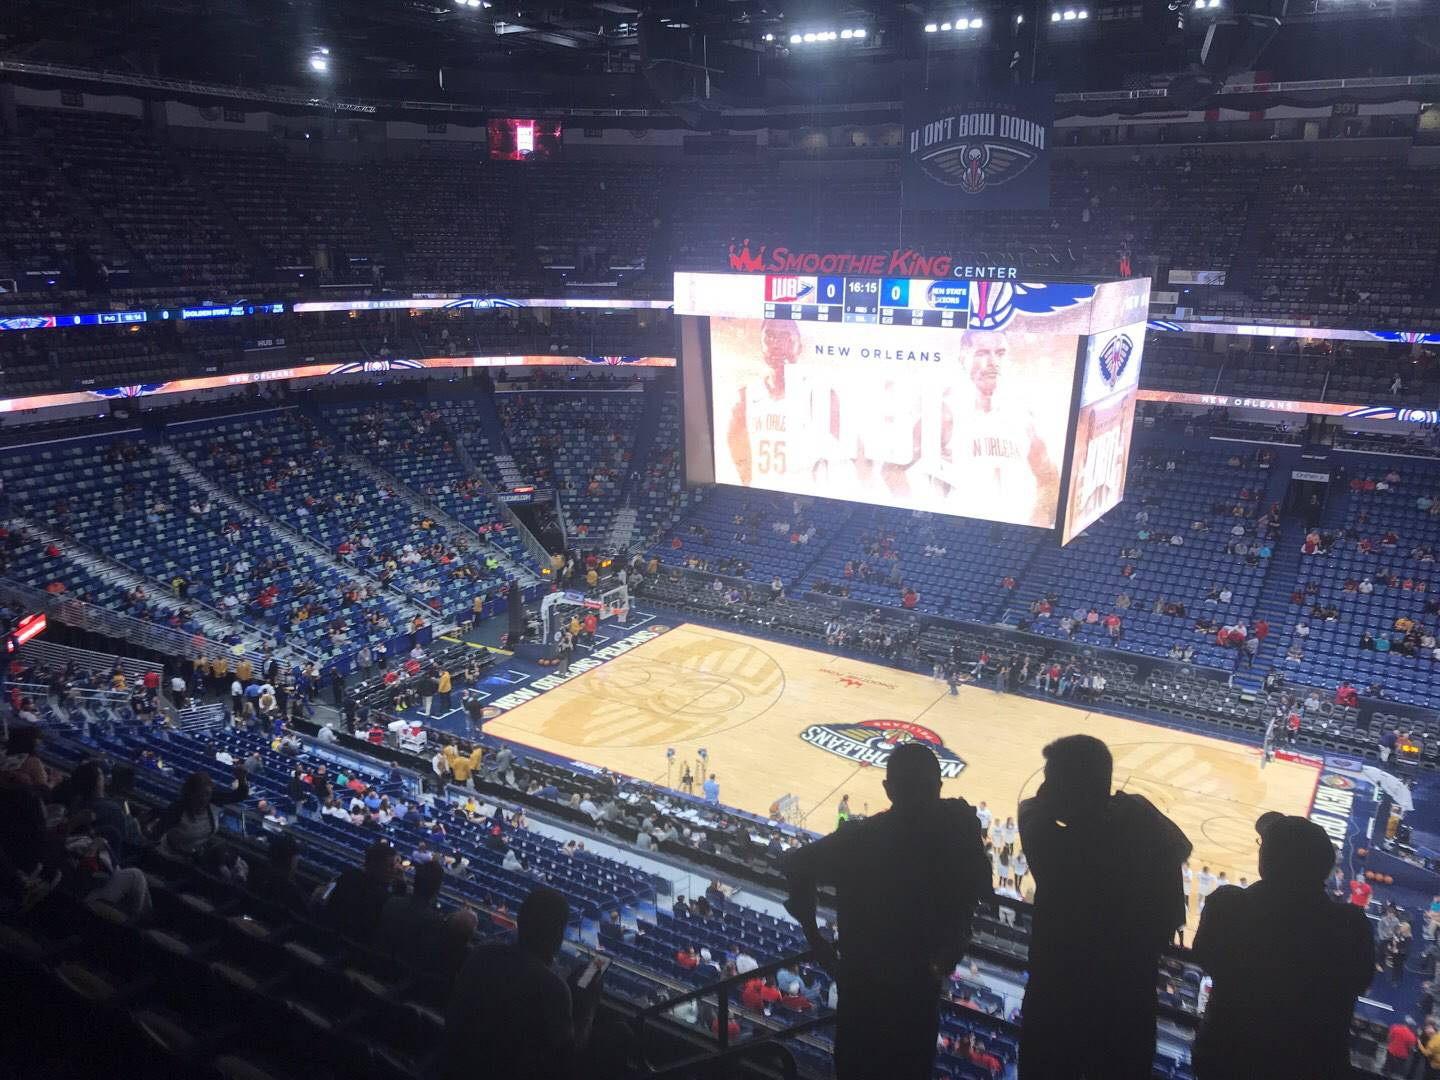 Smoothie King Center Section 314 Row 7 Seat 18